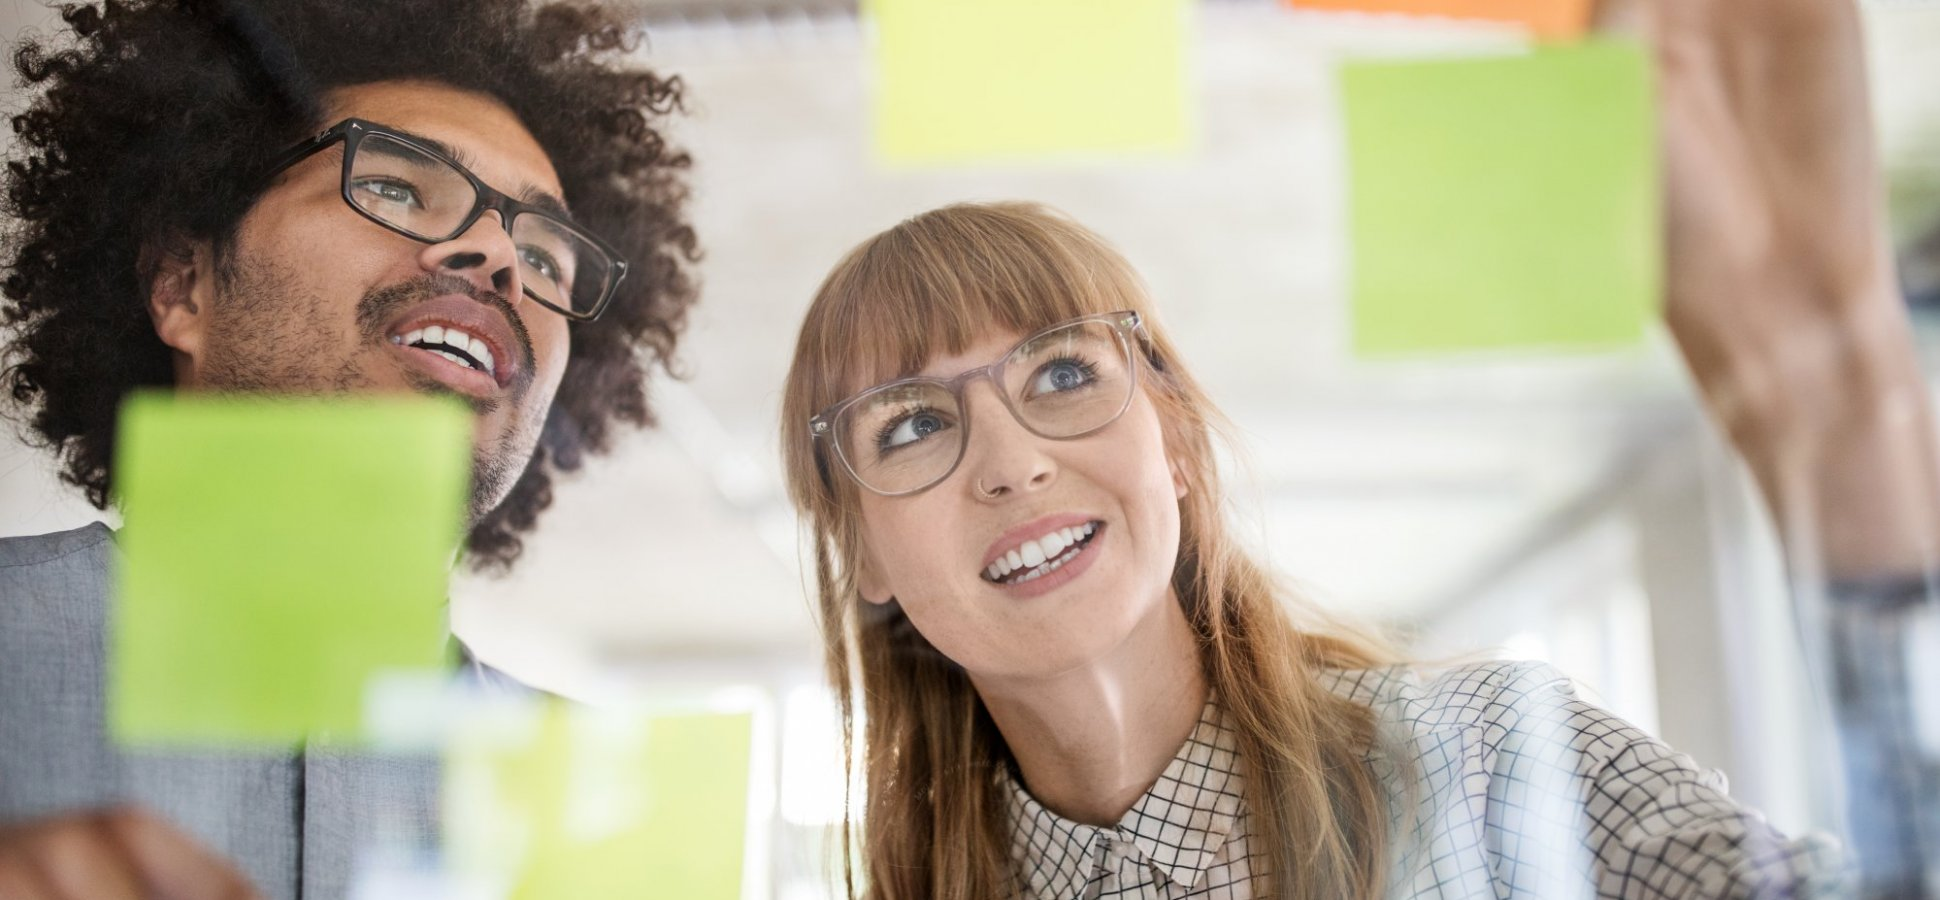 5 Skills to Learn If You Want to Be More Confident (Yes, Confidence Can Be Learned)